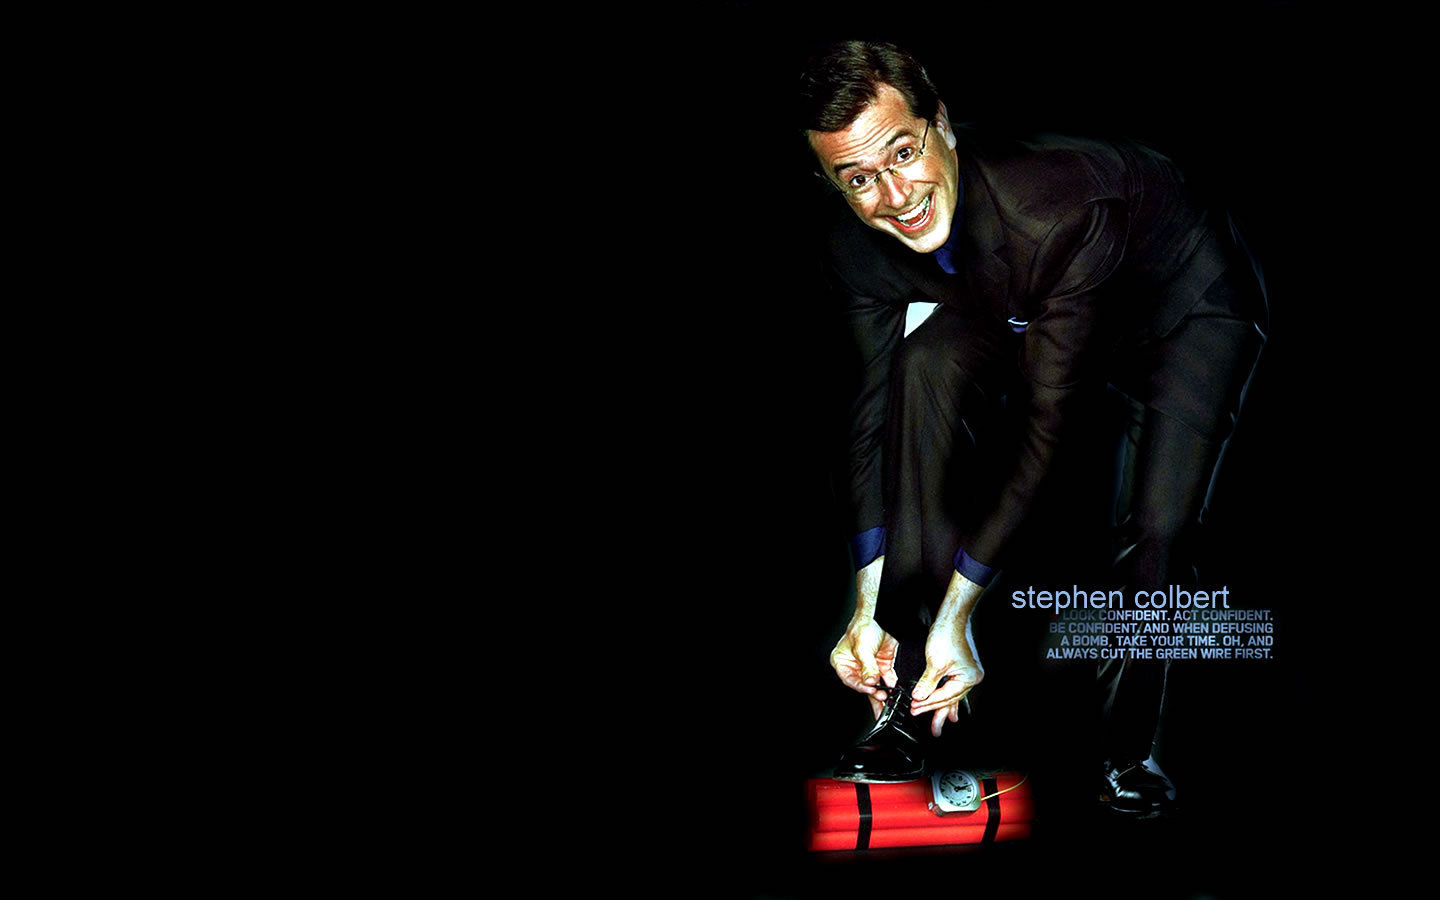 Stephen Colbert images Stephen HD wallpaper and background photos 1440x900